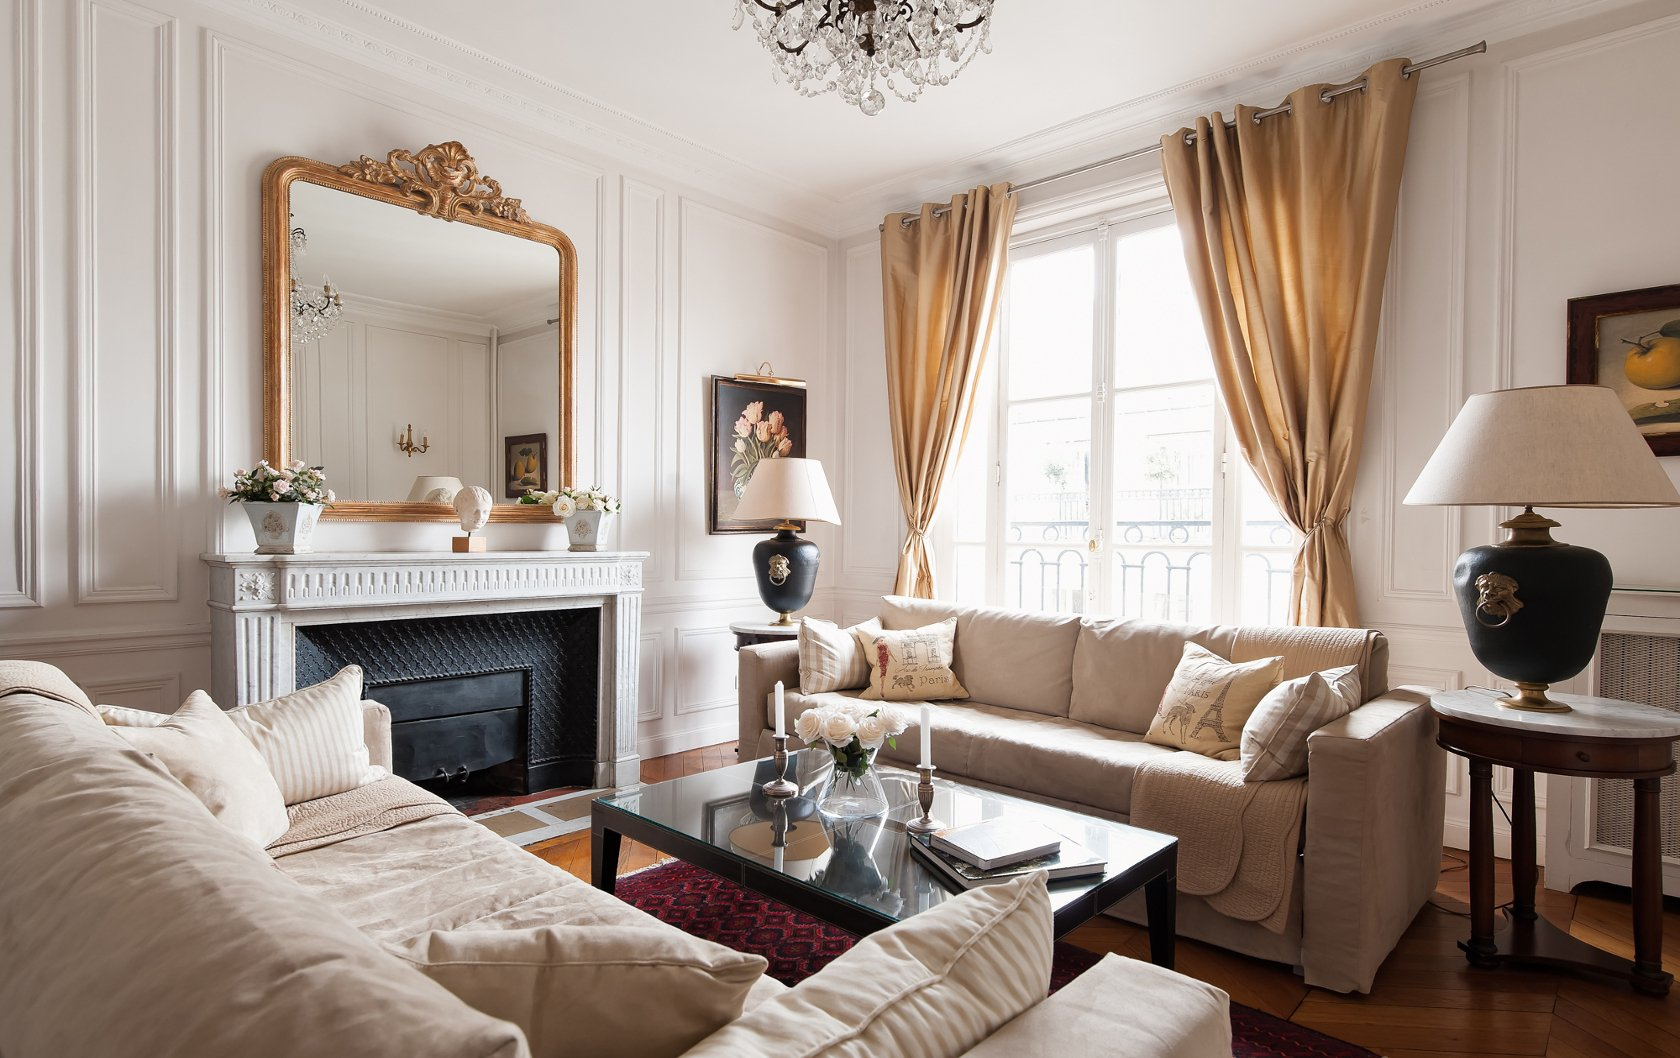 French Design: How to Easily Make Your Home Feel Parisian